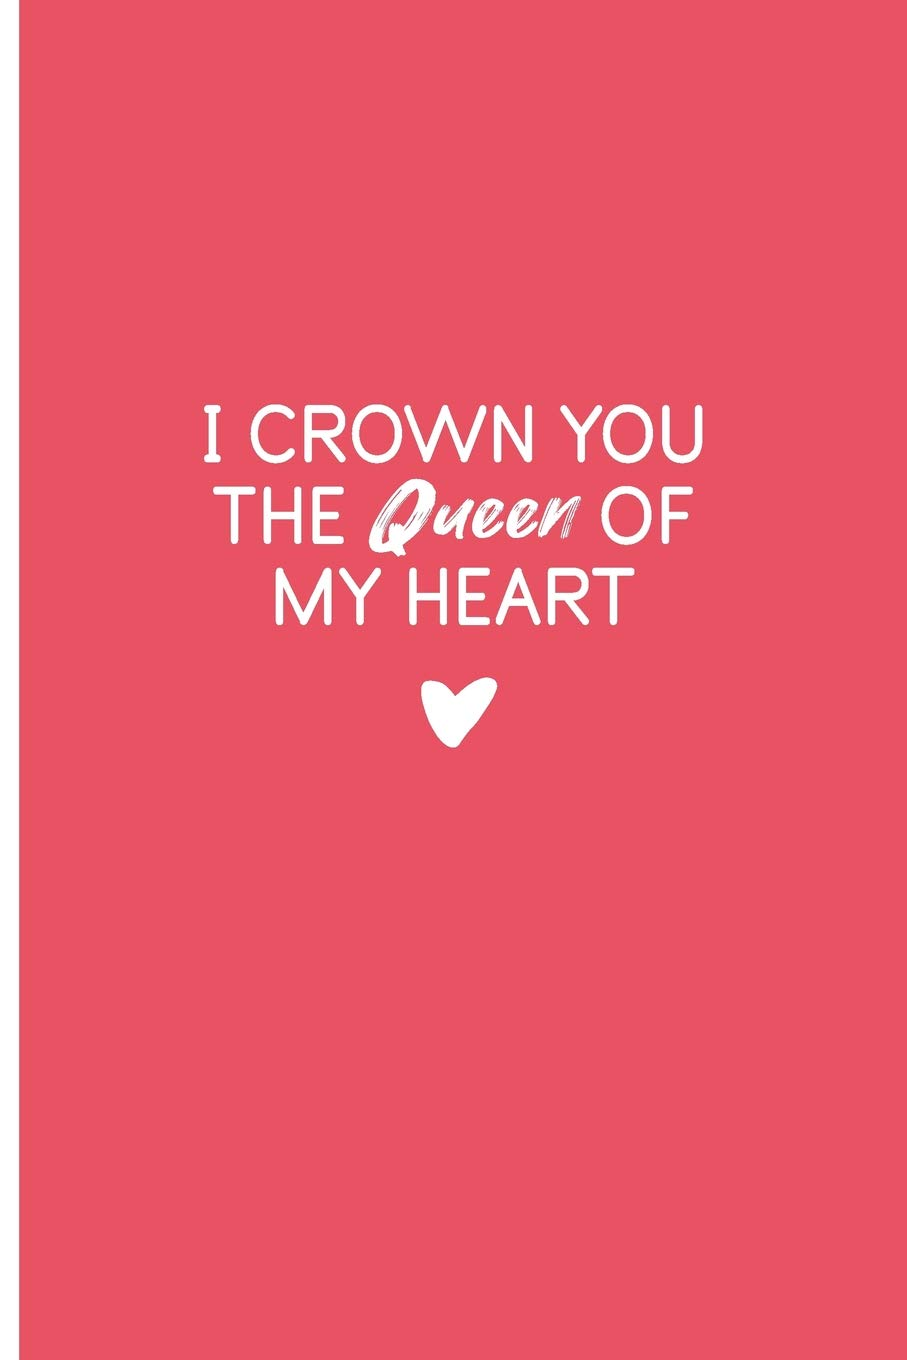 I Crown You The Queen Of My Heart: Feeling Love Quotes ...